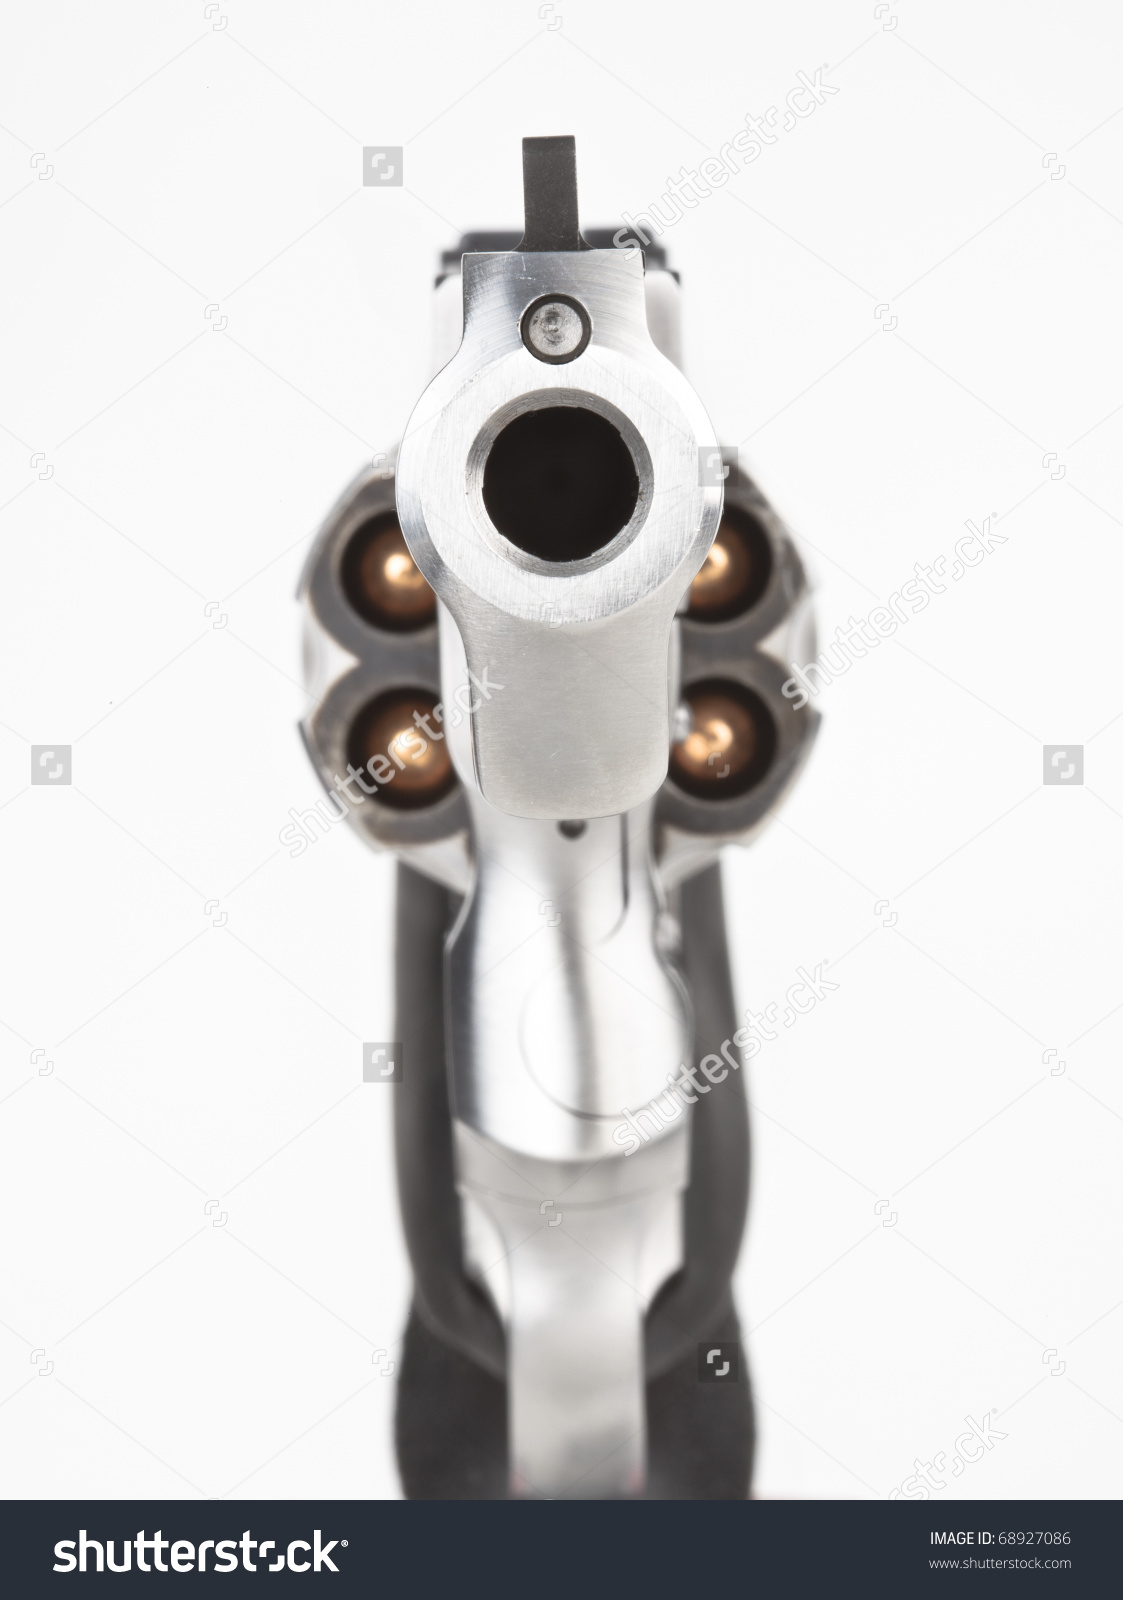 Looking down the barrel of a gun clipart.